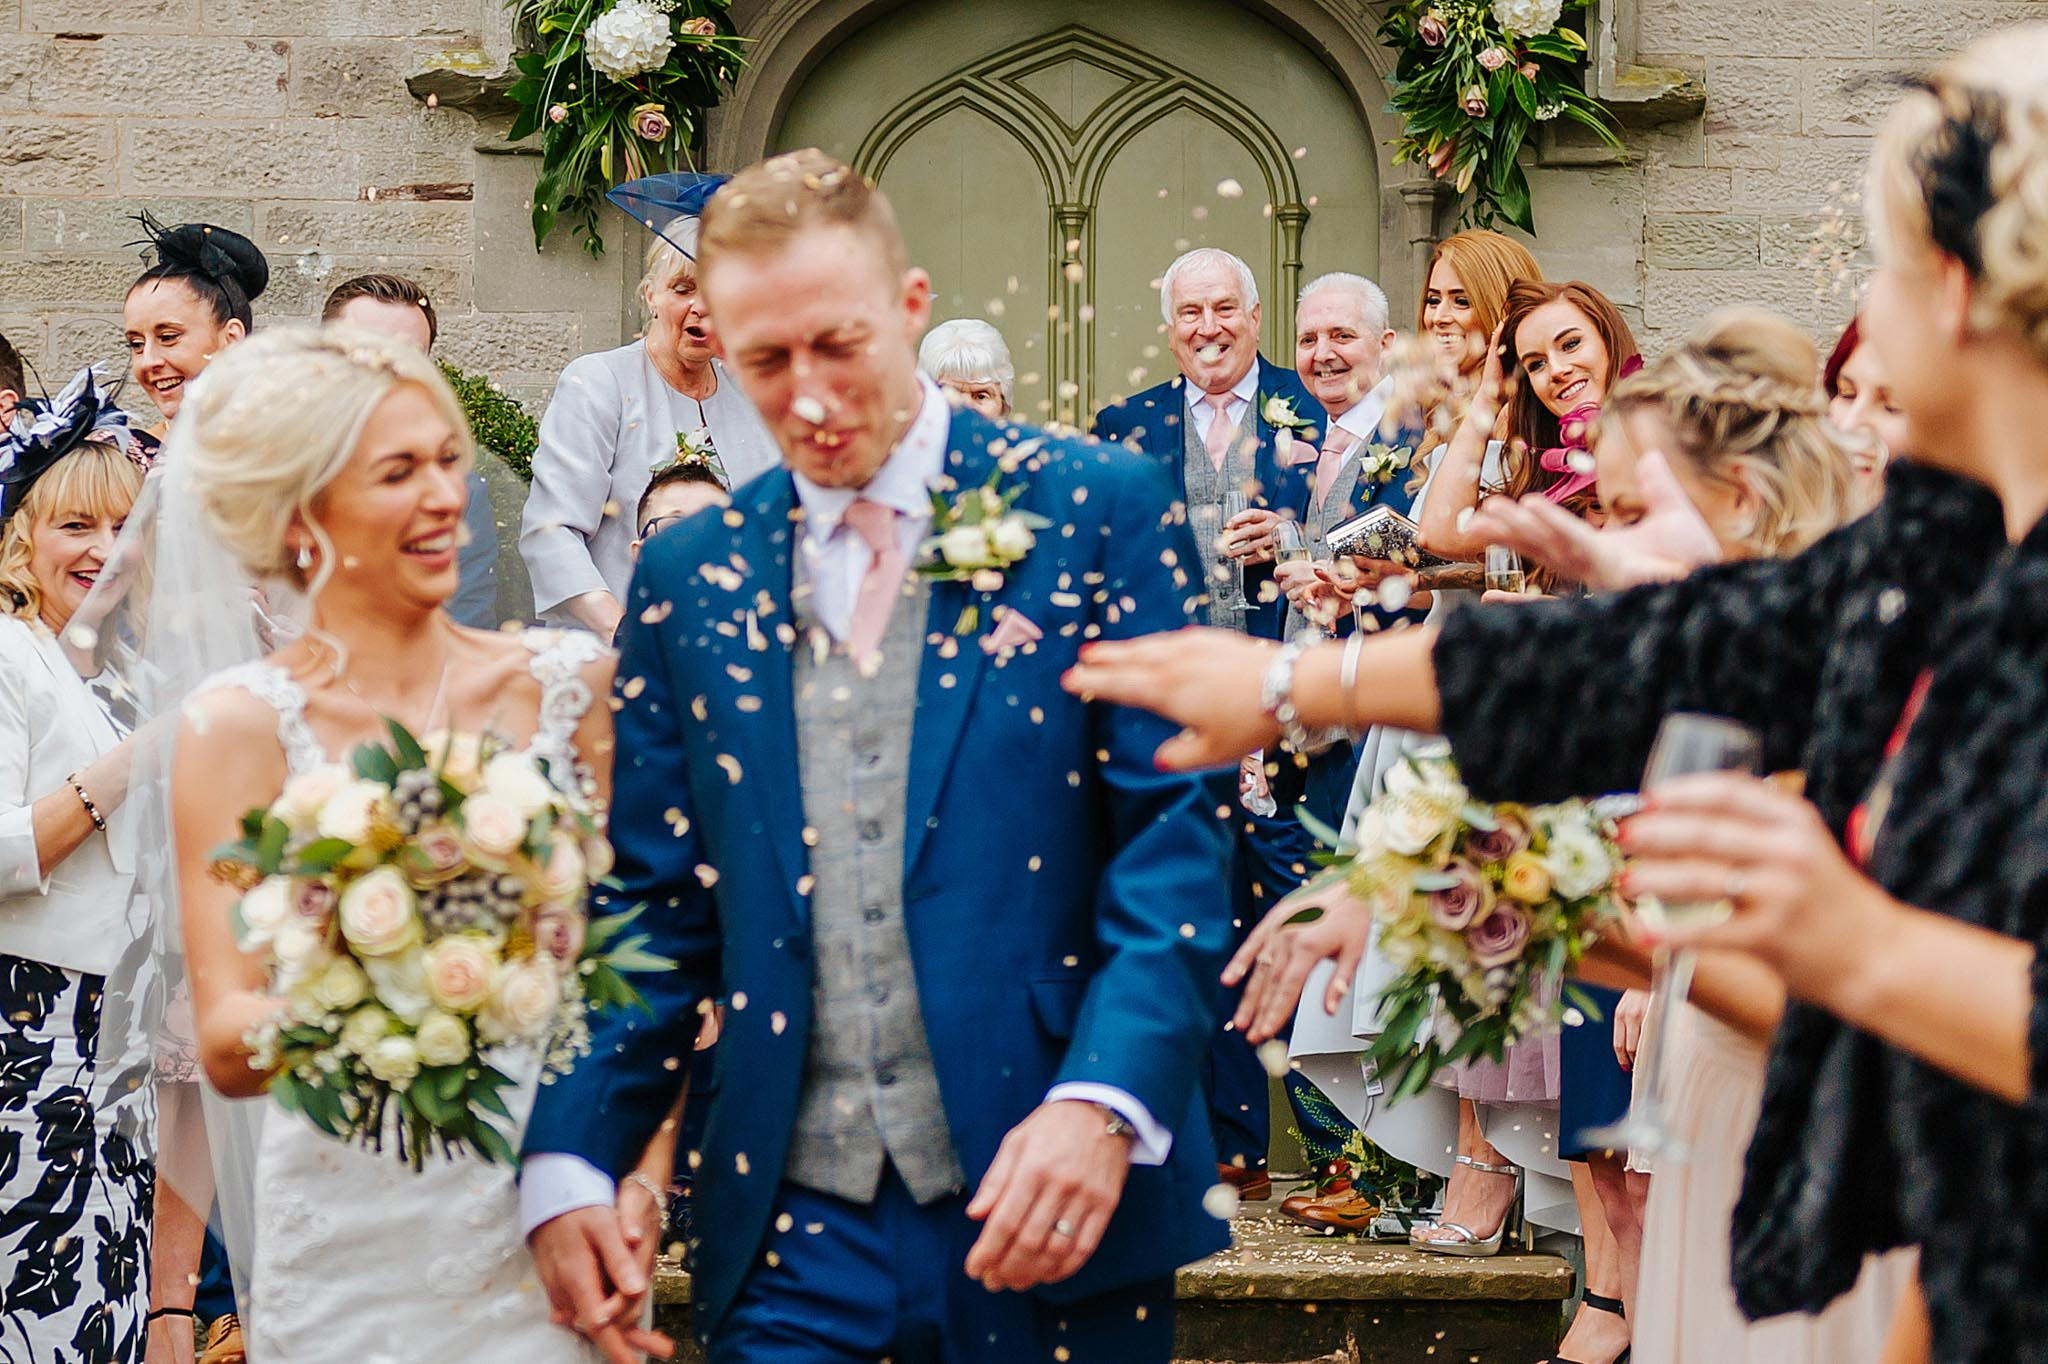 lemore manor wedding herefordshire 49 - Lemore Manor wedding, Herefordshire - West Midlands | Sadie + Ken